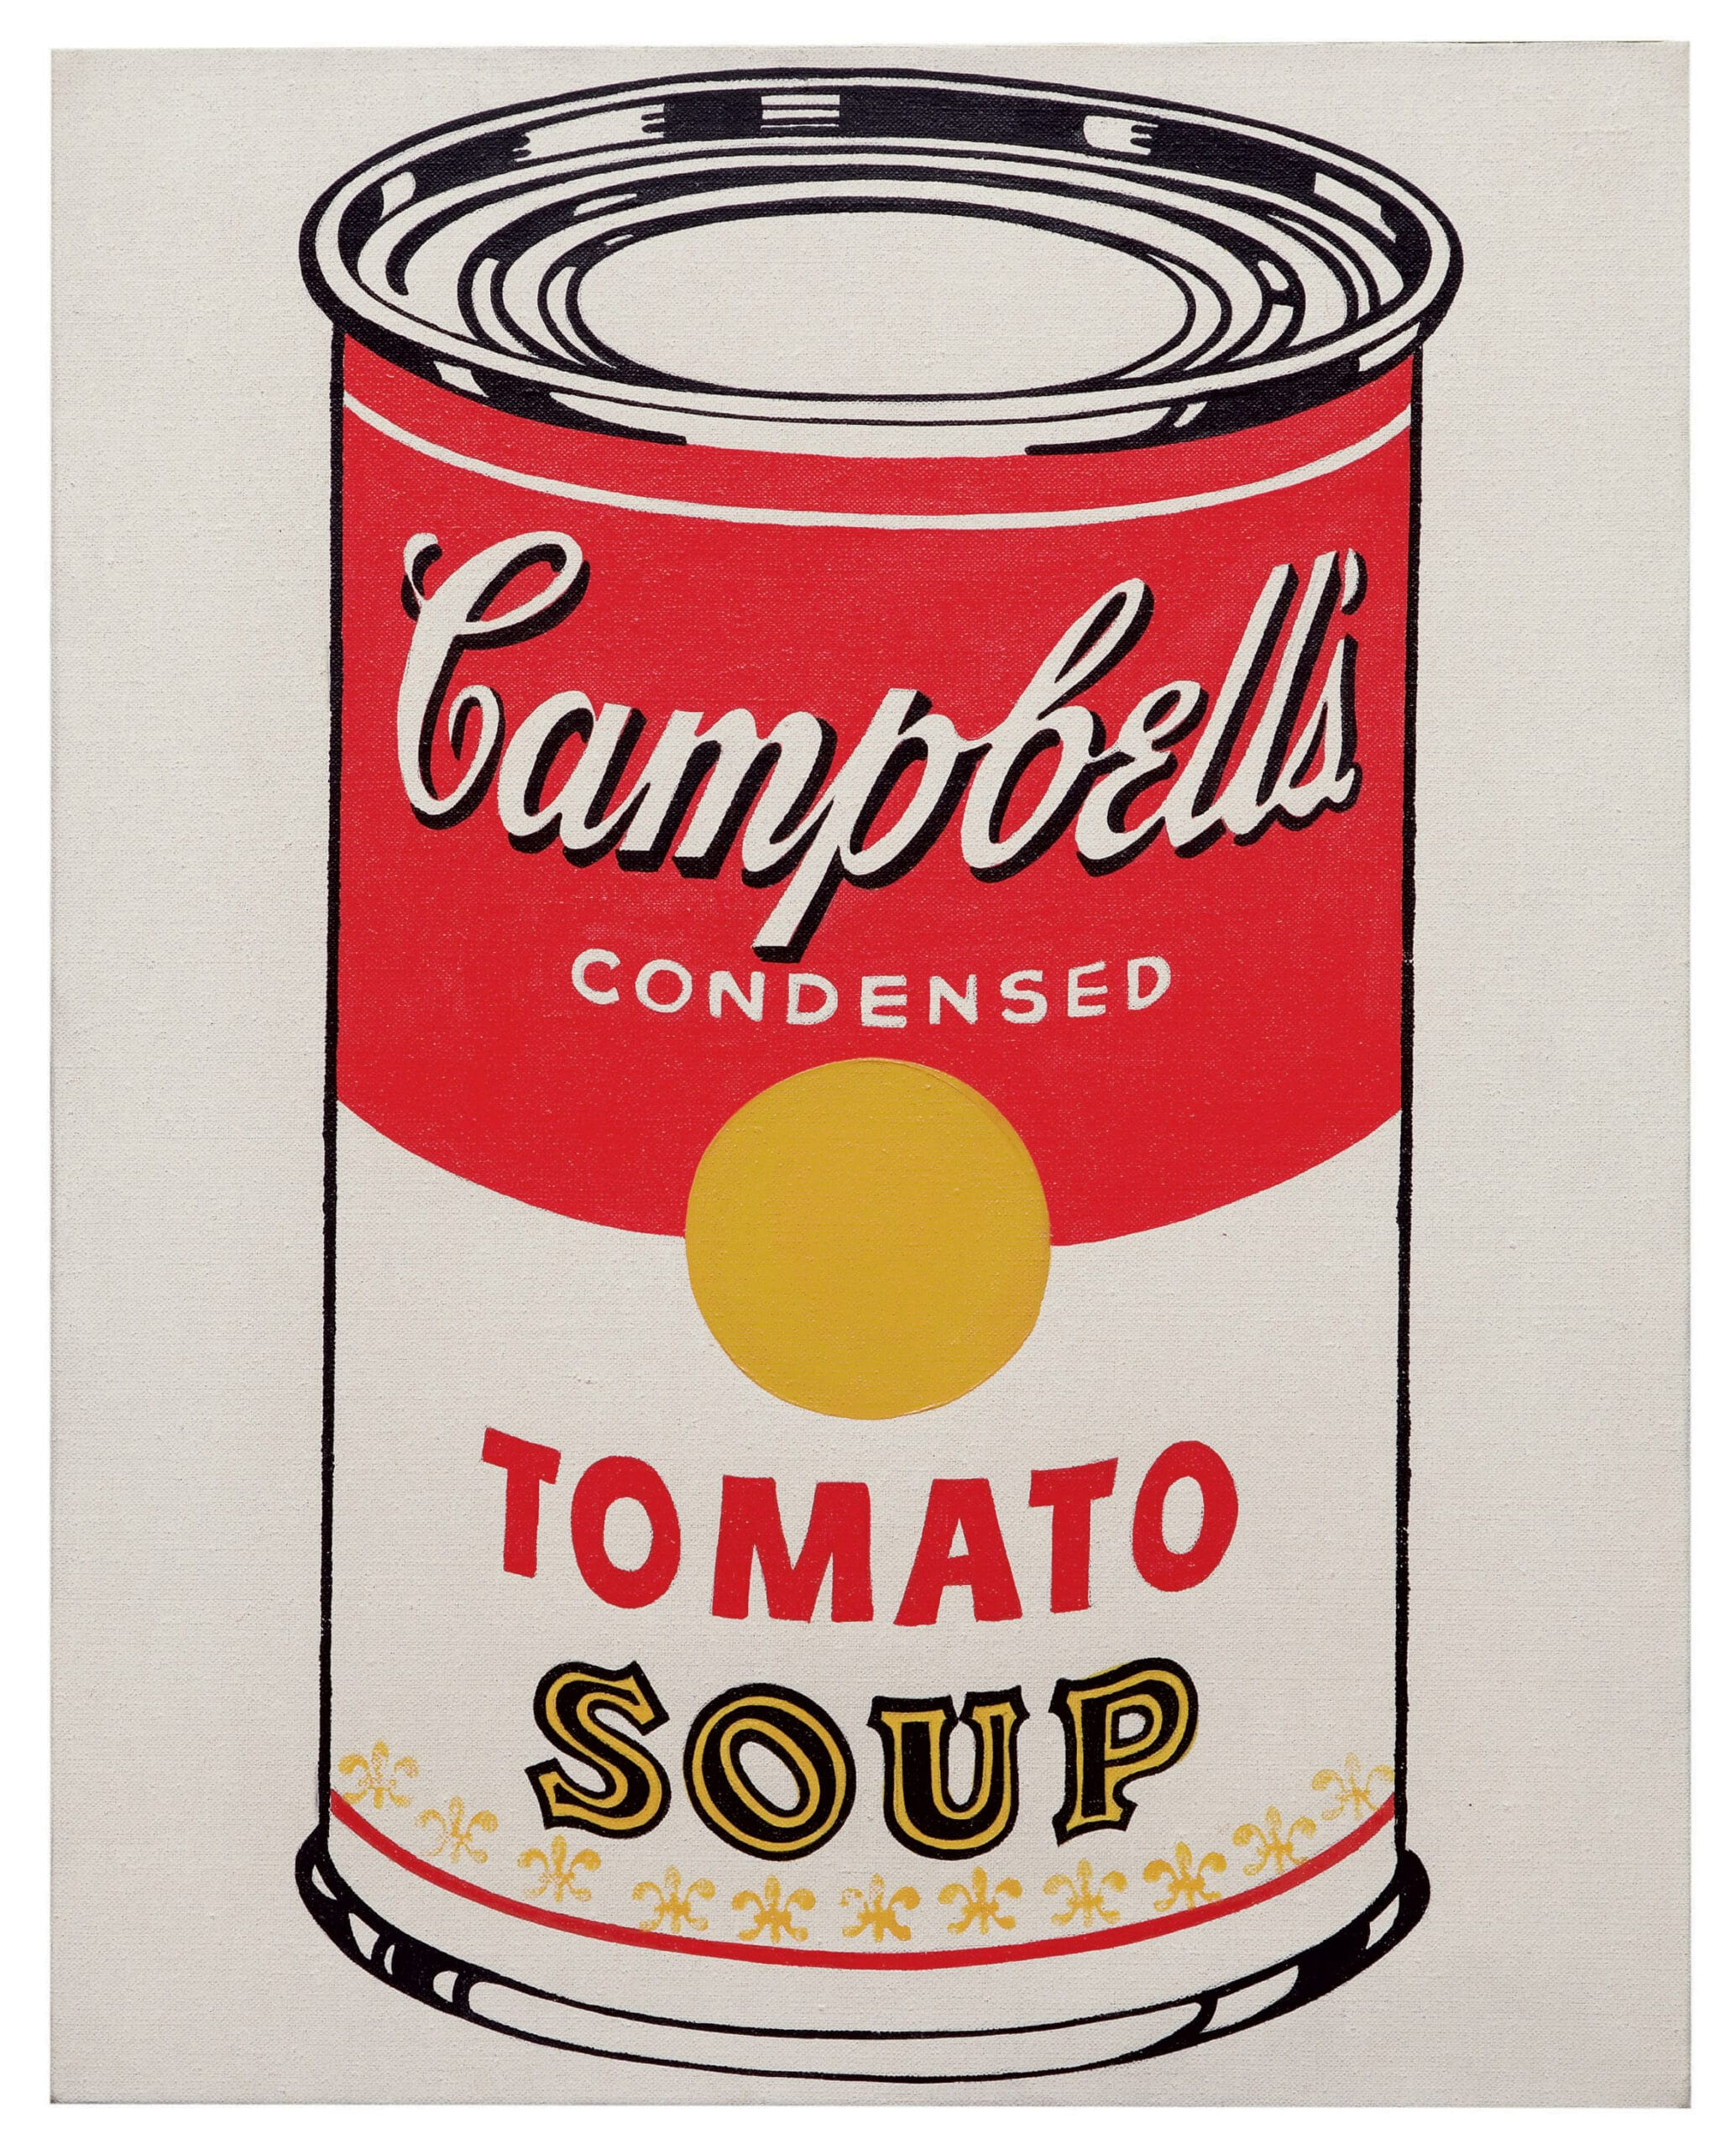 Warhols famous paintings